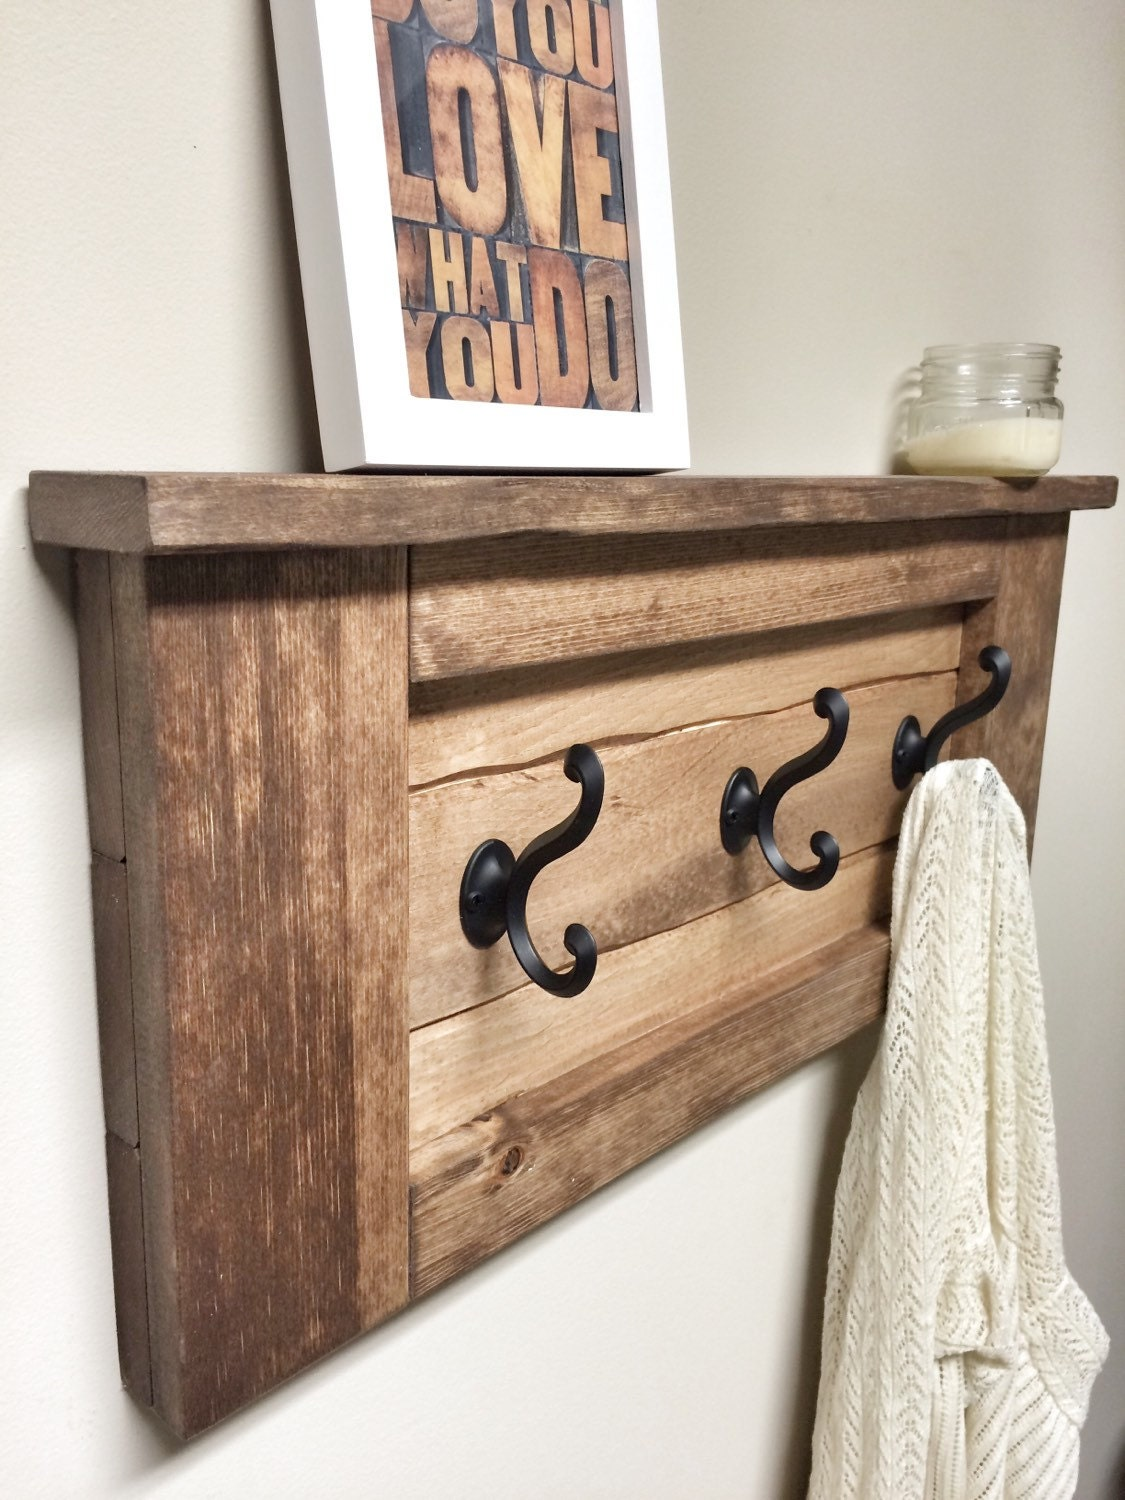 Beau Rustic Wooden Entryway Walnut Coat Rack, Rustic Wooden Shelf, Entryway  Rack, Coat Rack, Rustic Home Decor, Rustic Furniture, Floating Shelf